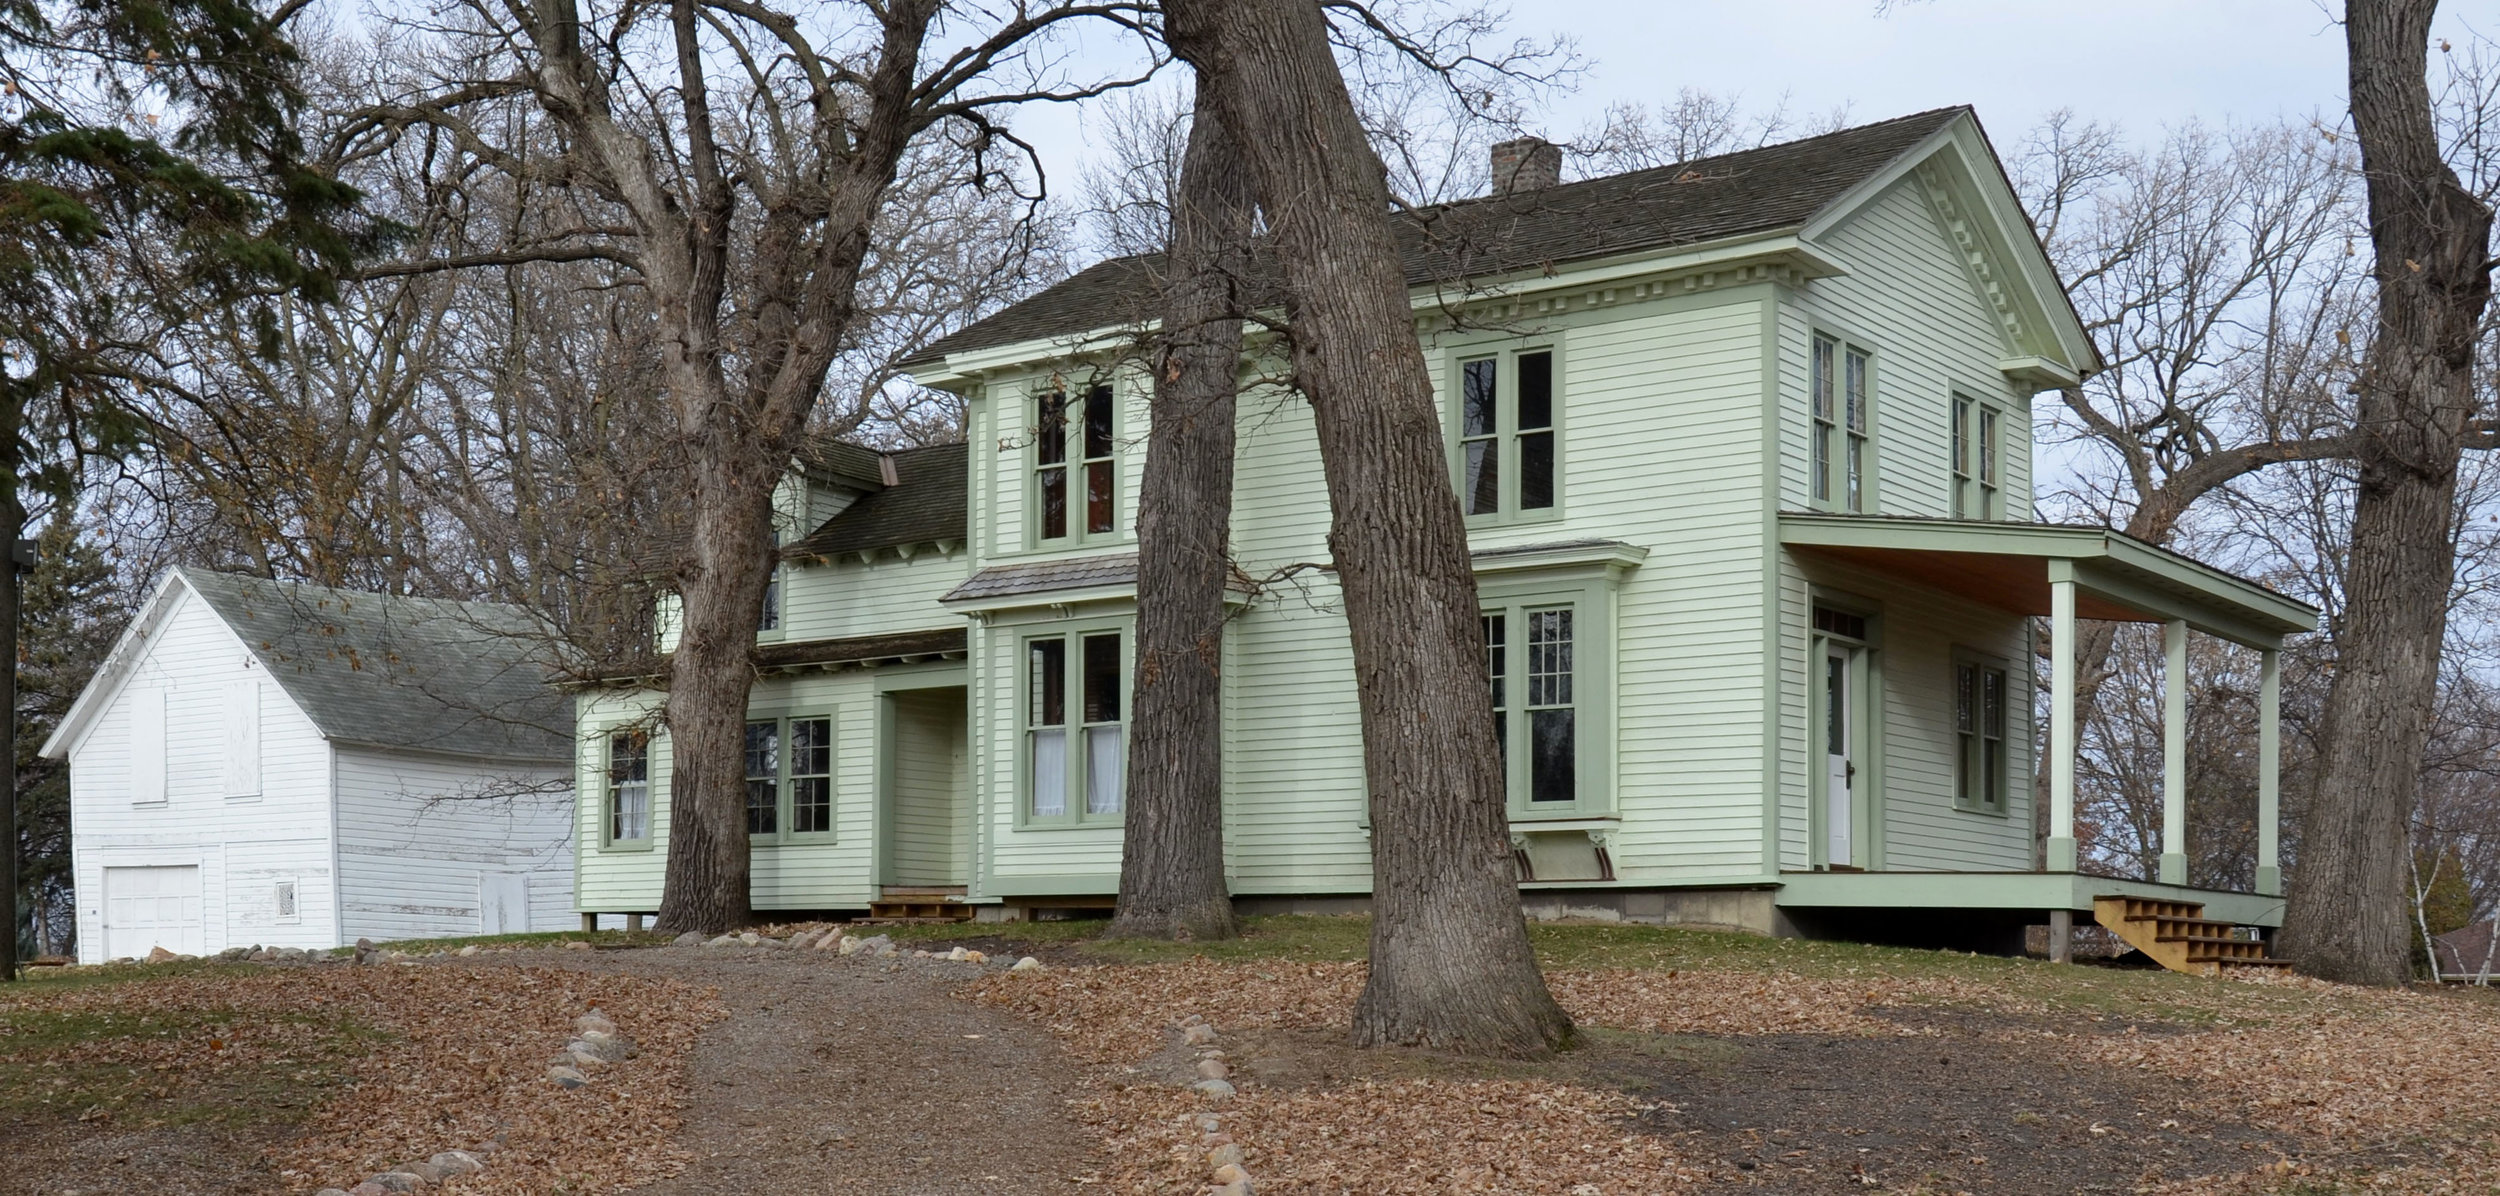 Harrington-Merrill House                                                              Historic Structure Report